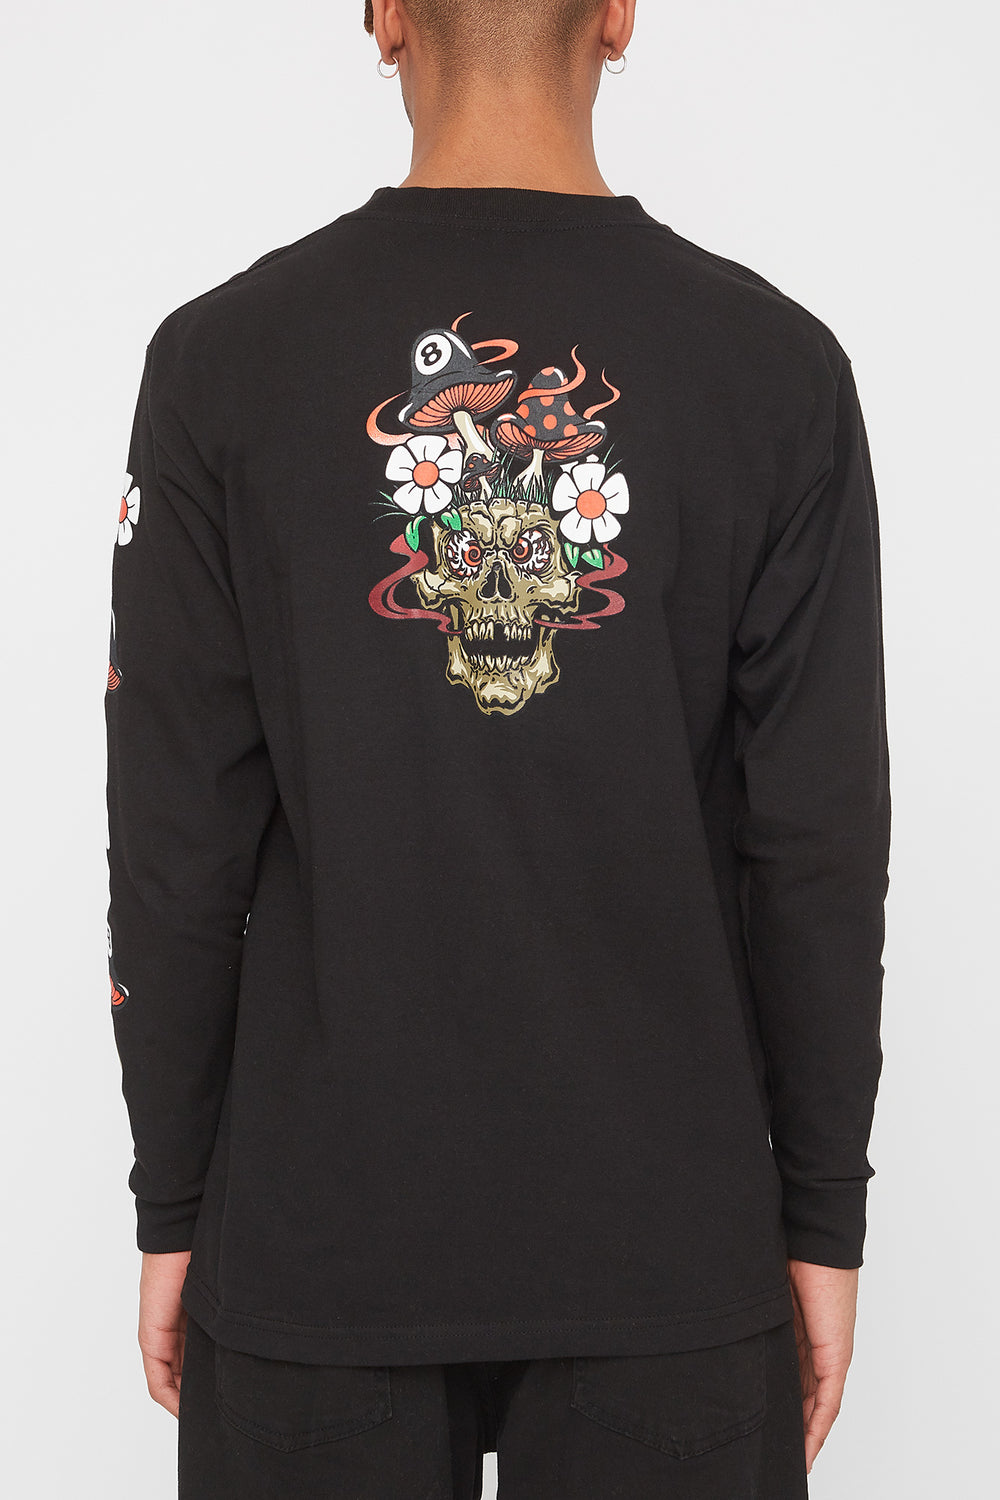 T-Shirt à Manches Longues Grizzly Skull Shroom Noir